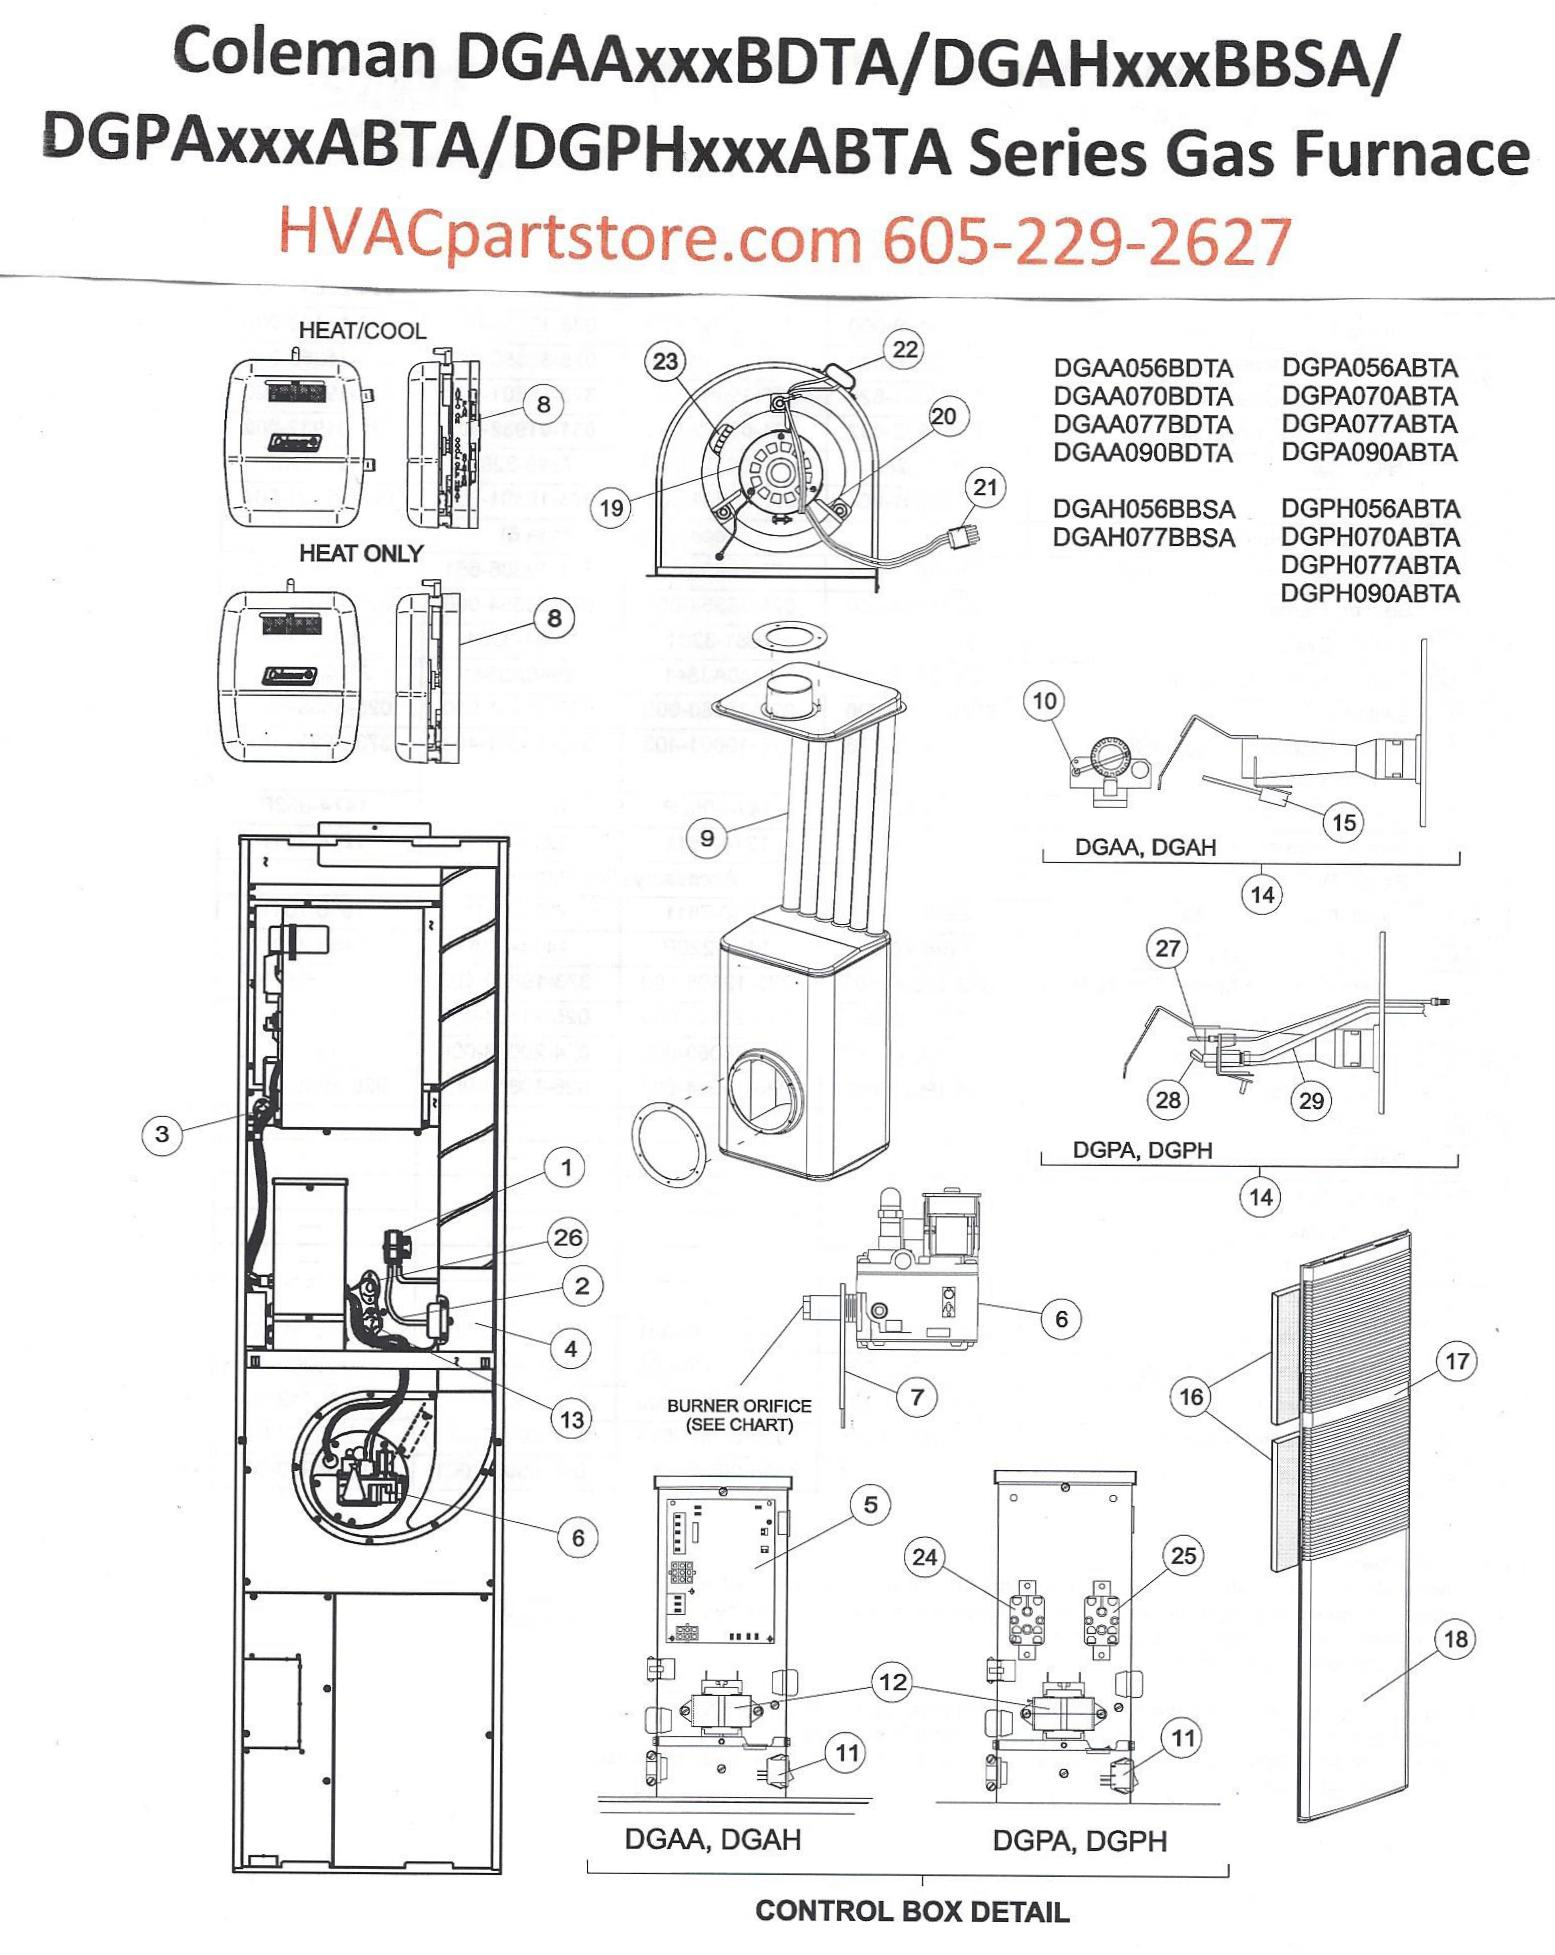 Click here to view a manual for the DGAA077BDTA which includes wiring  diagrams.